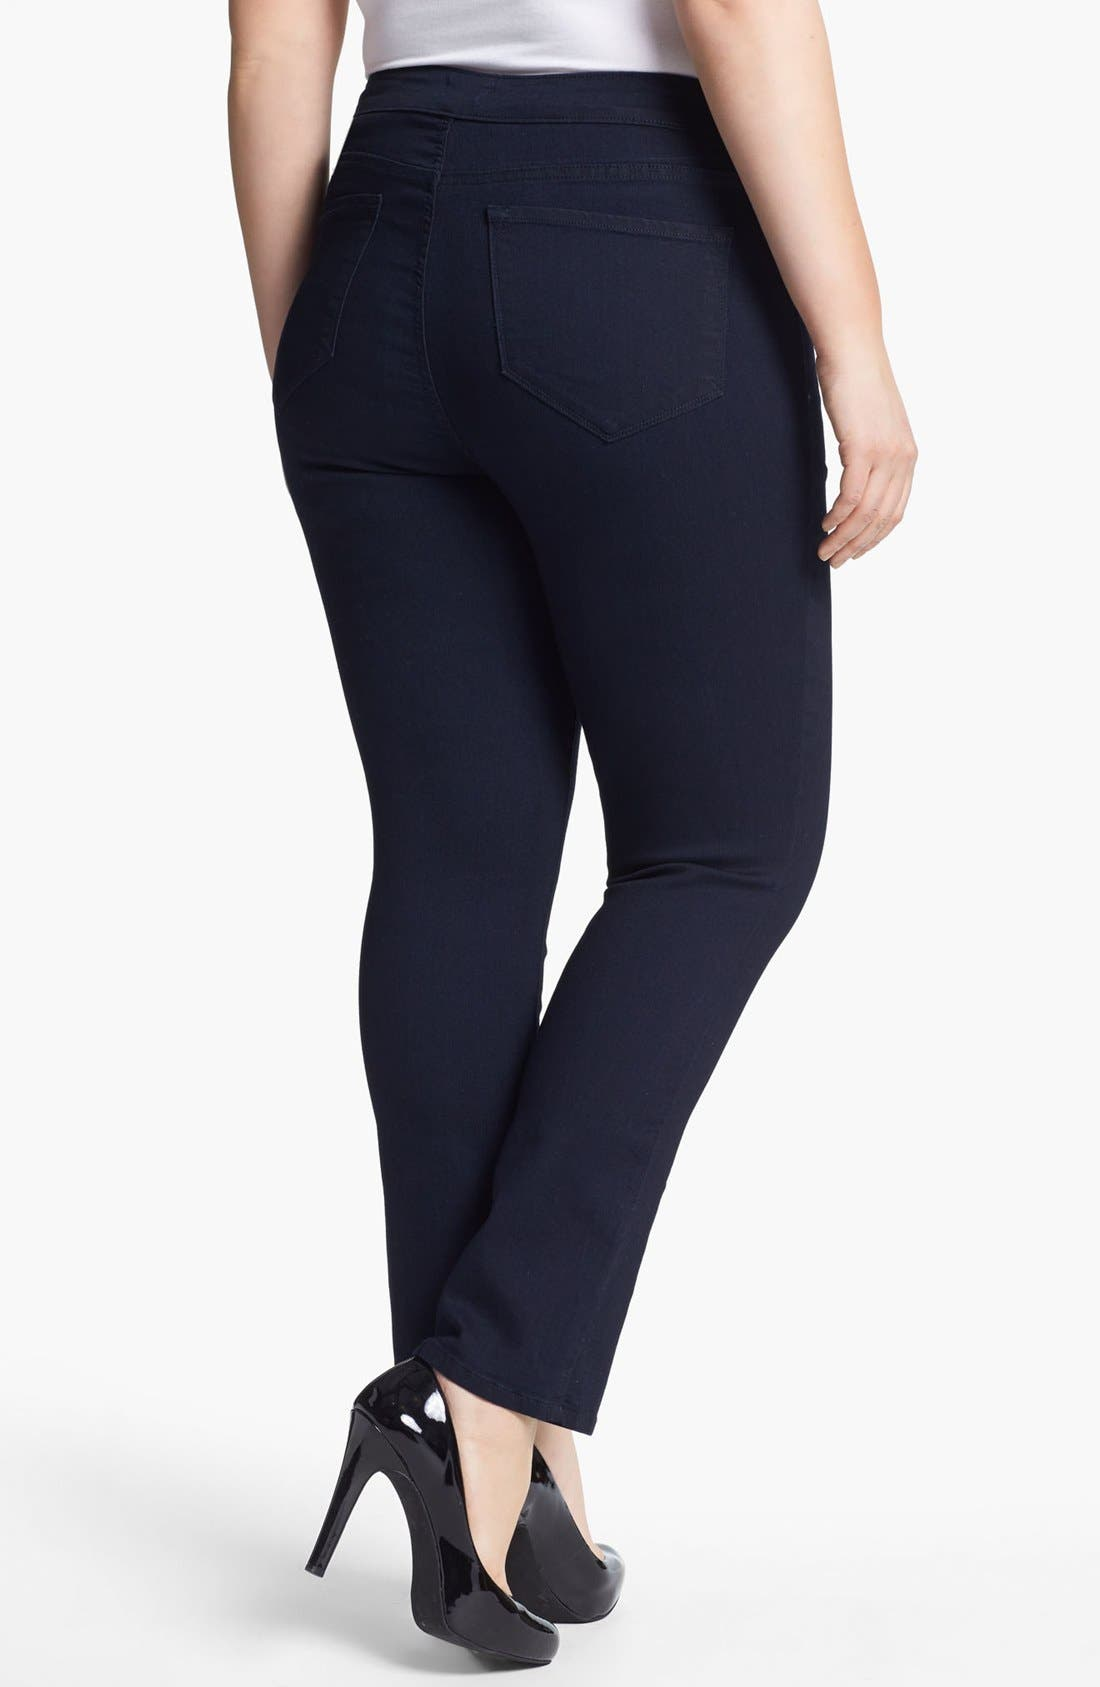 Alternate Image 2  - NYDJ 'Jaclyn' Stretch Skinny Jeans (Resin) (Plus Size)